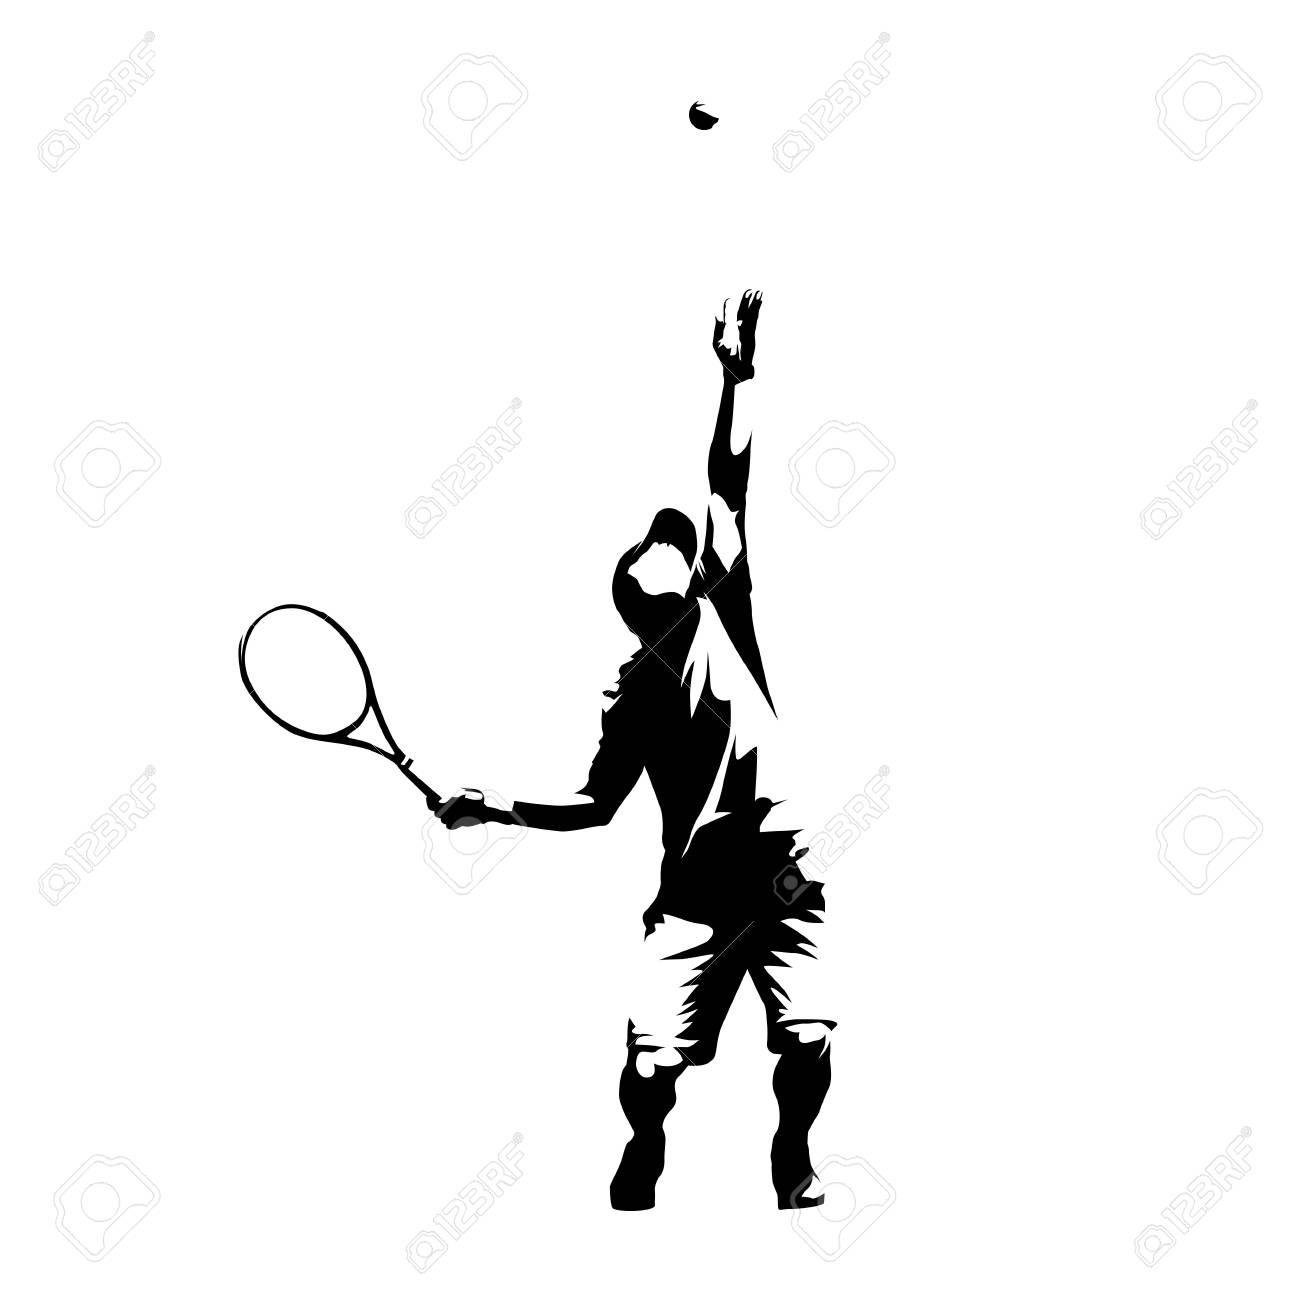 Tennis player serving ball, service, abstract isolated vector silhouette - 120086470